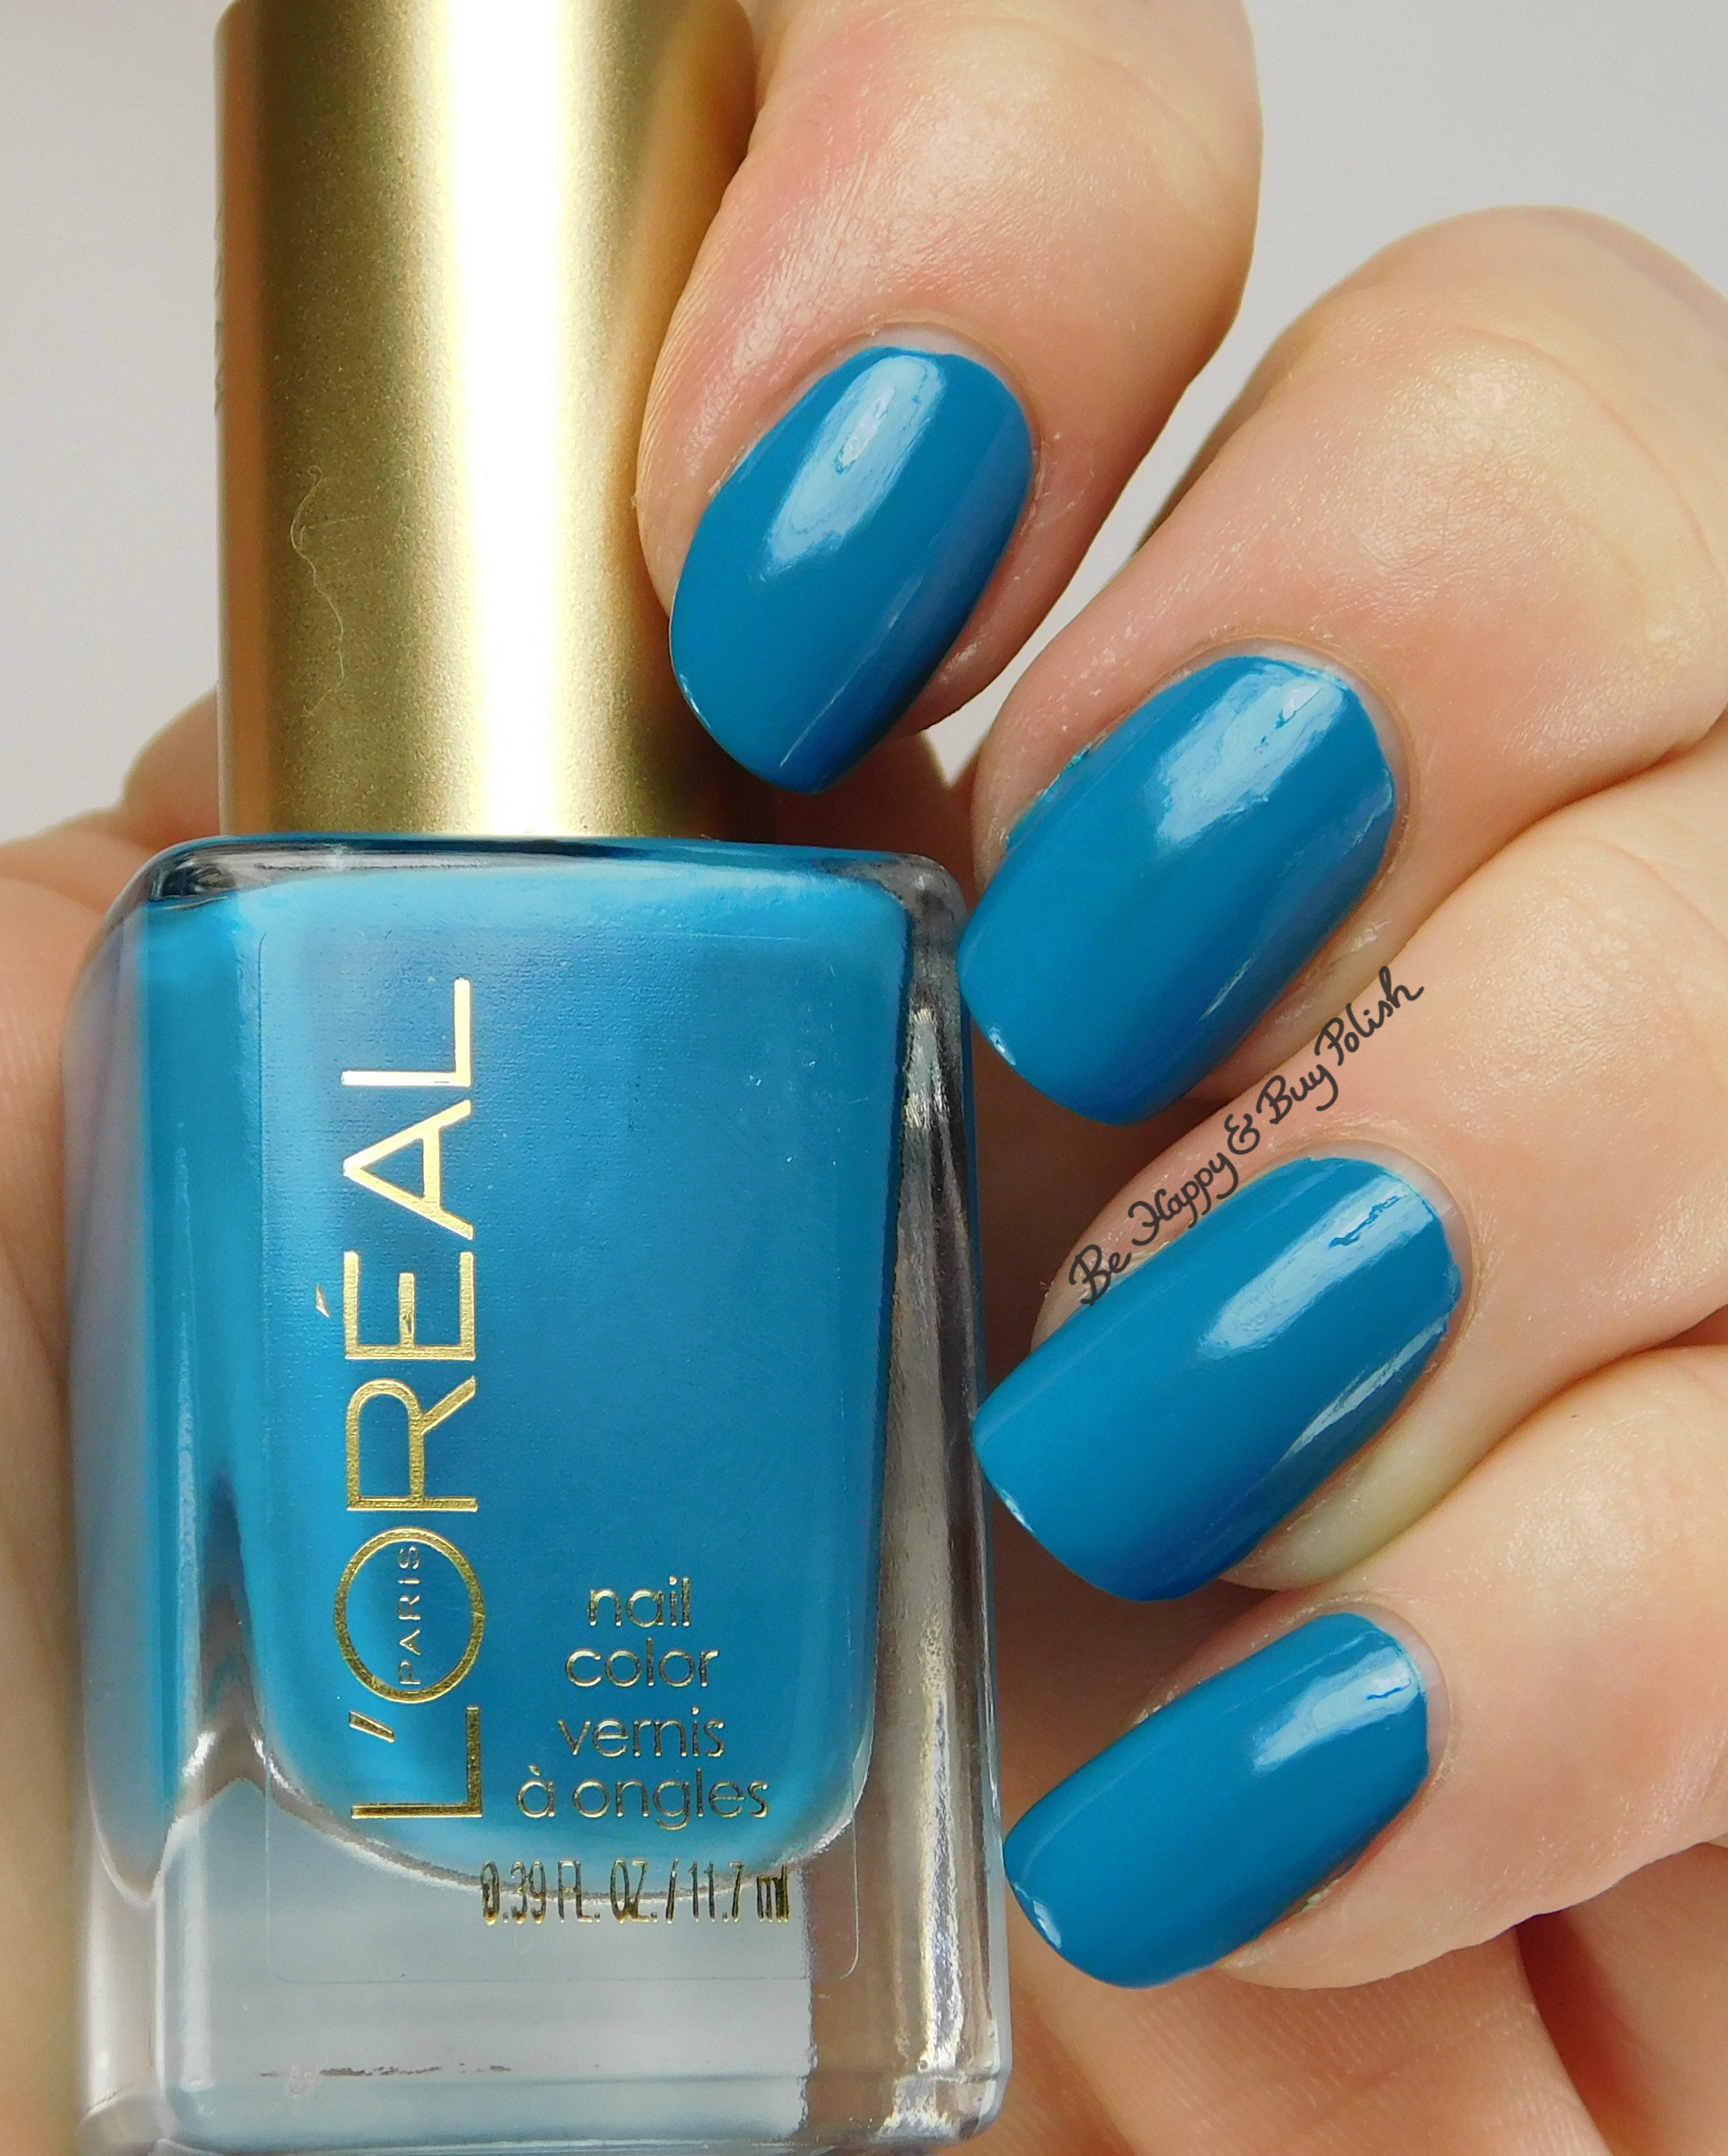 L Oreal Bohemian Beauty Nail Polishes Swatches Review Be Happy And Buy Polish